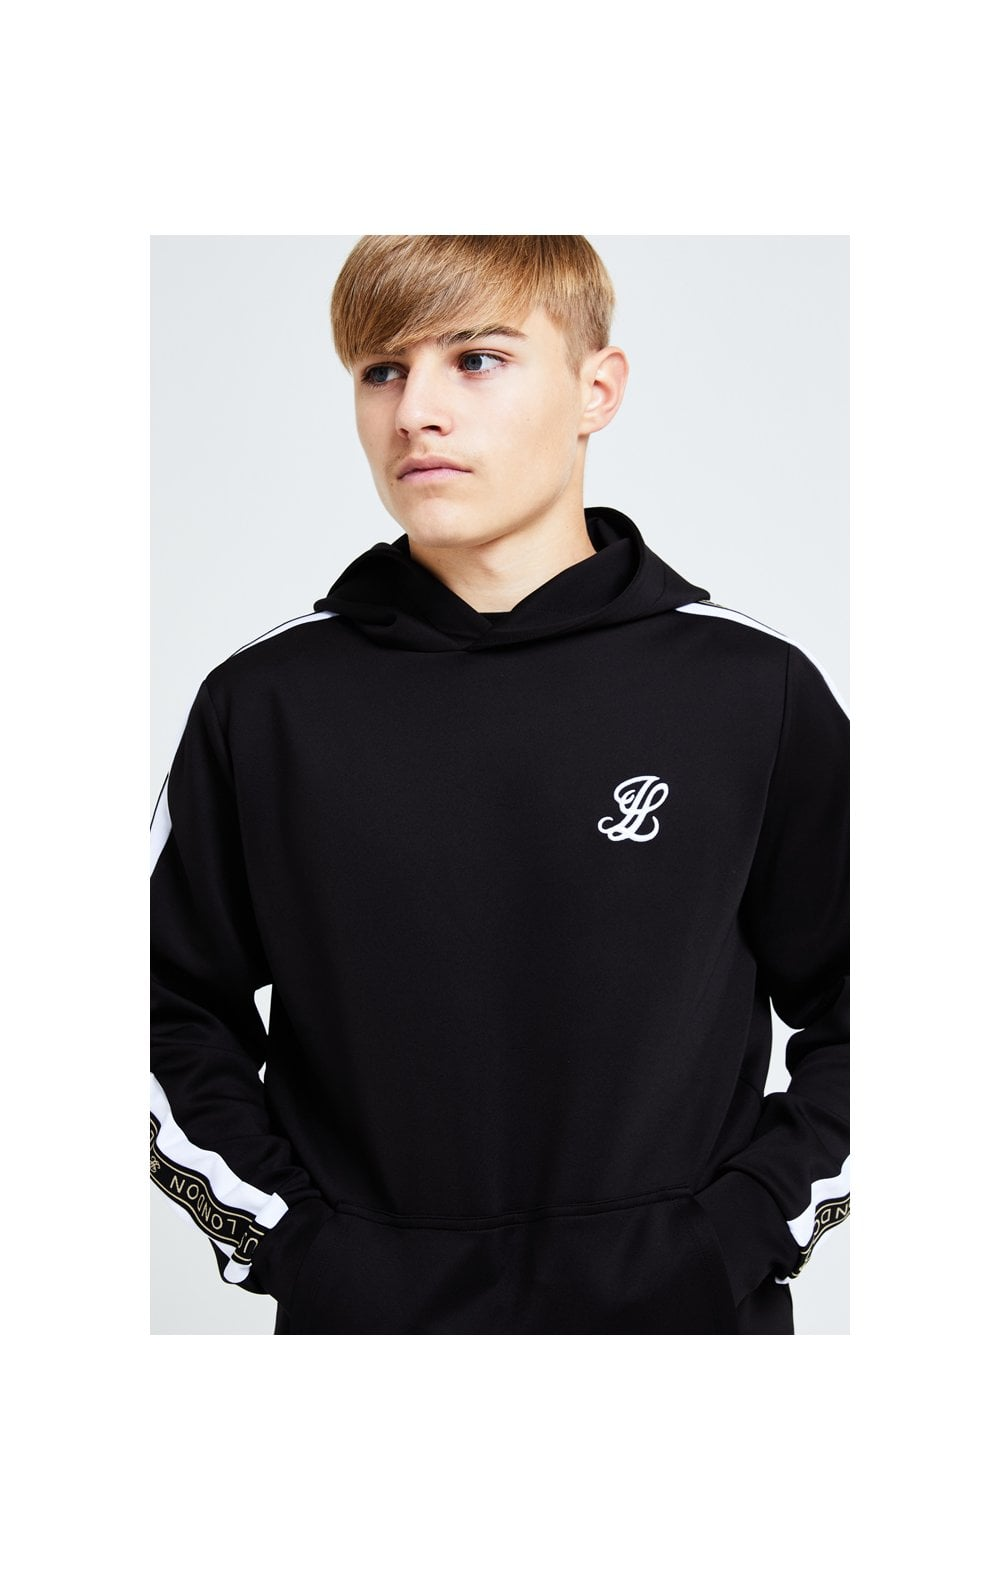 Illusive London Diverge Overhead Hoodie - Black Gold & White (1)